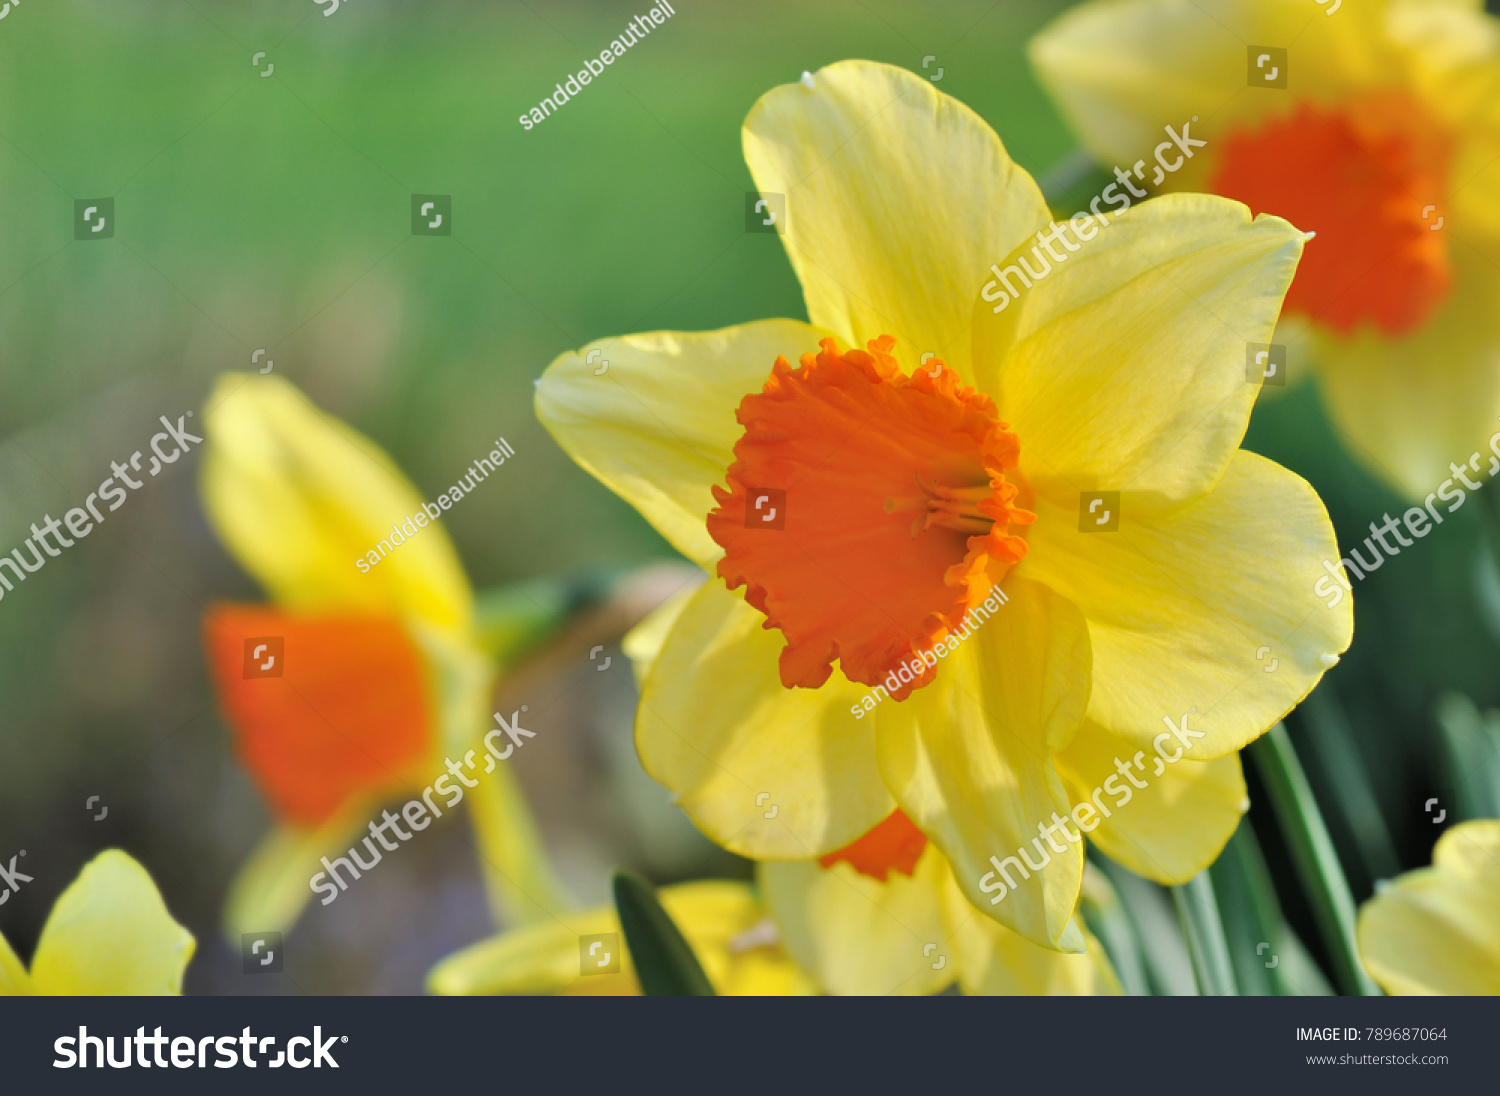 Close On Yellow And Orange Large Daffodil In A Garden Ez Canvas